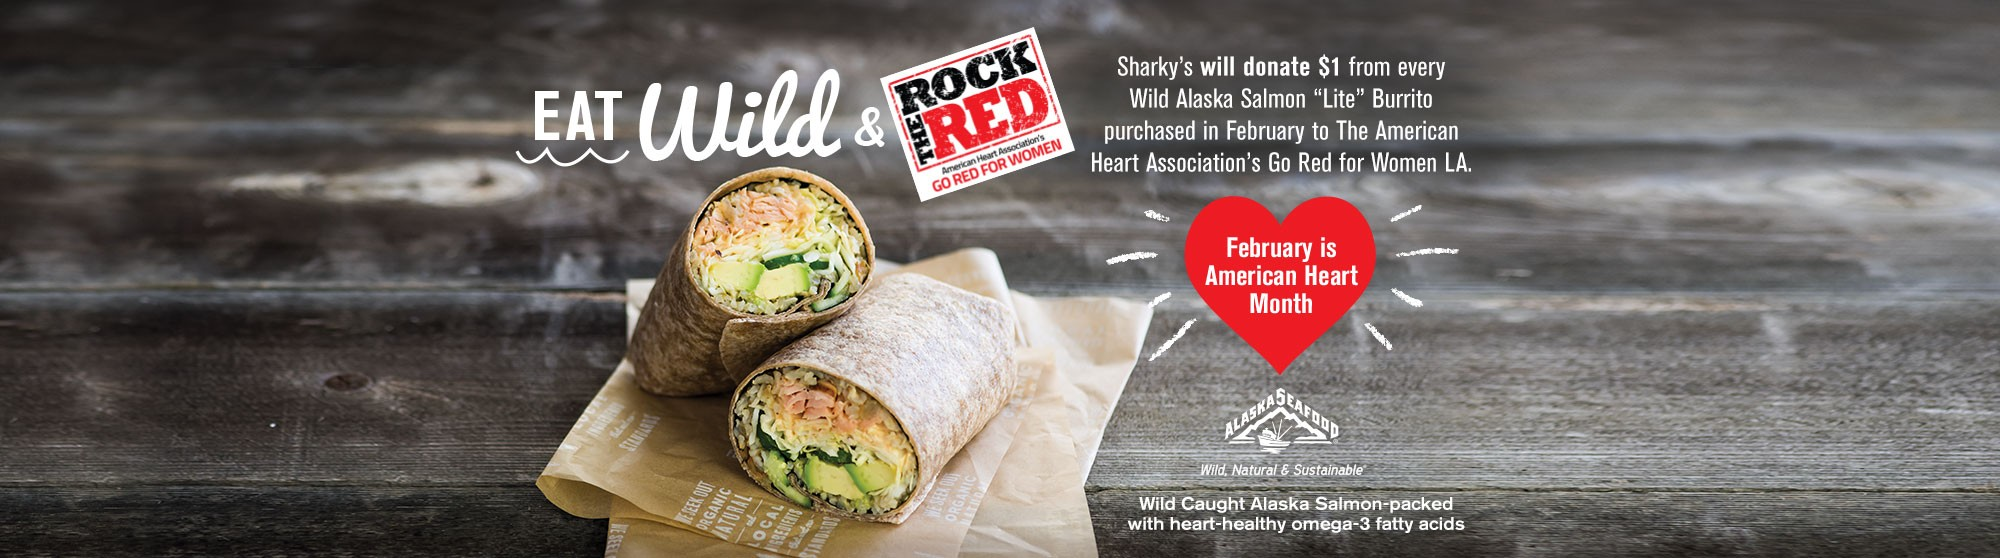 Eat Wild & Rock The Red